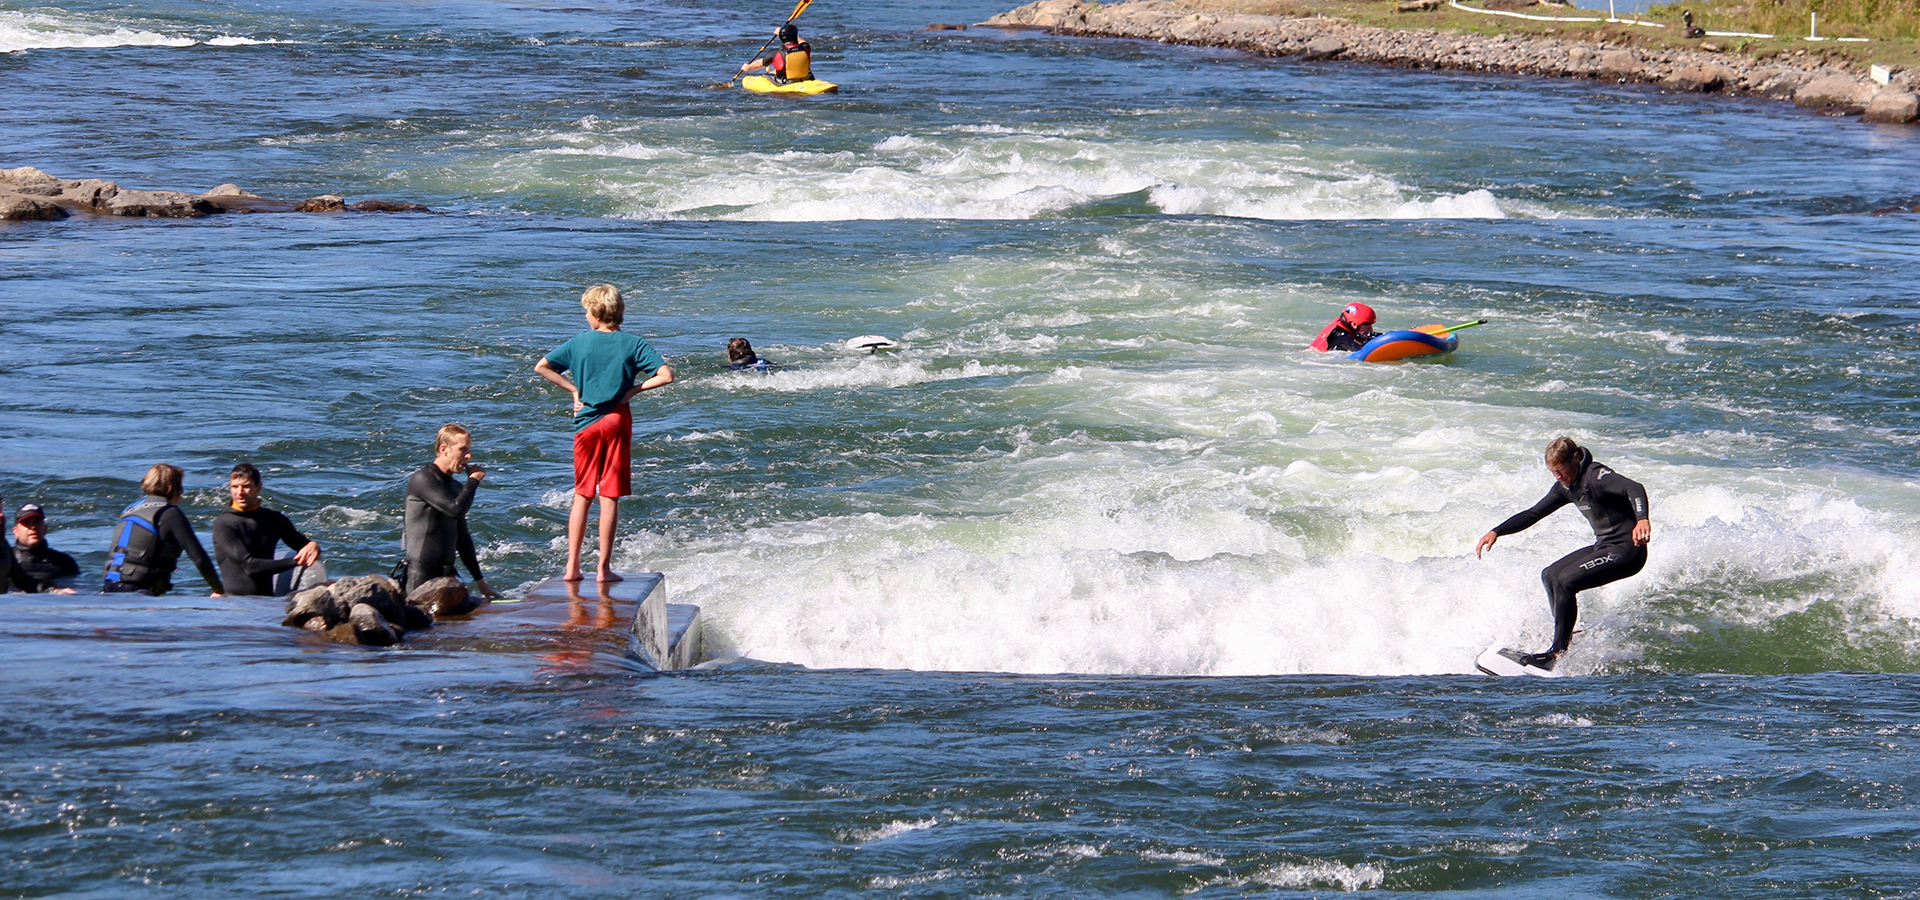 The surfing channel at Whitewater Park